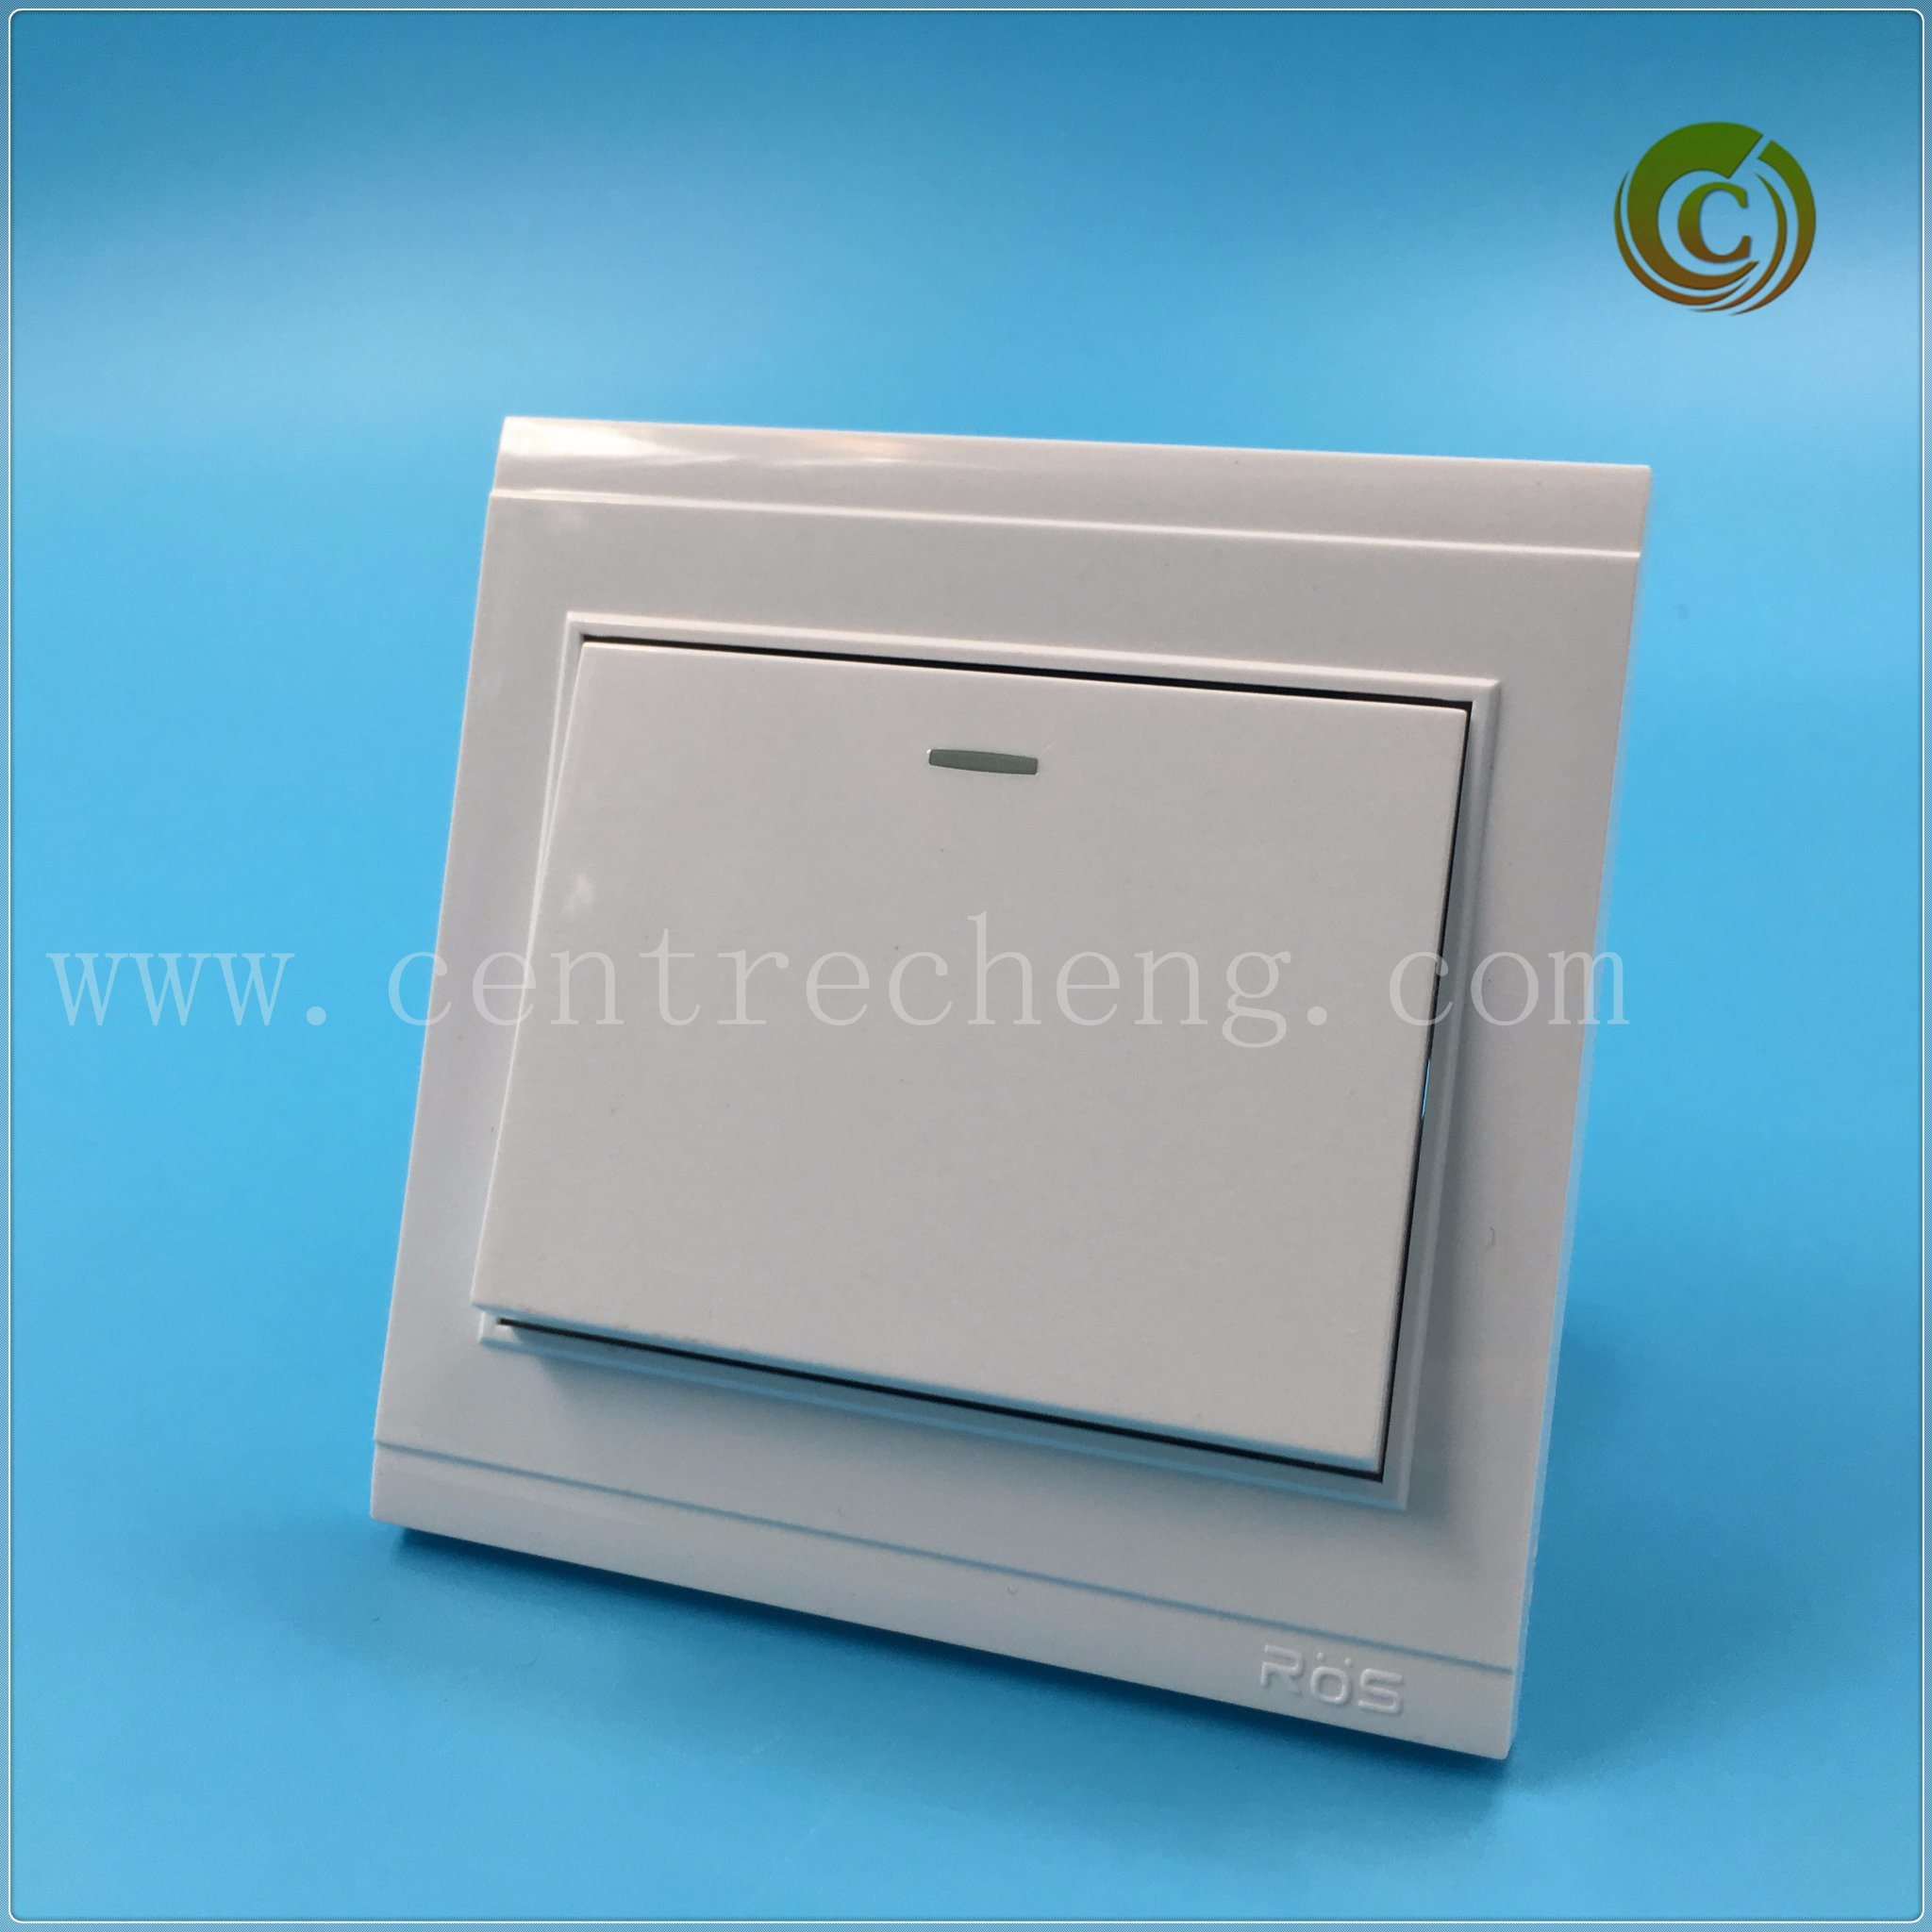 China 2018 Large Panel Wall Switch Electrical Switch White Switch ...